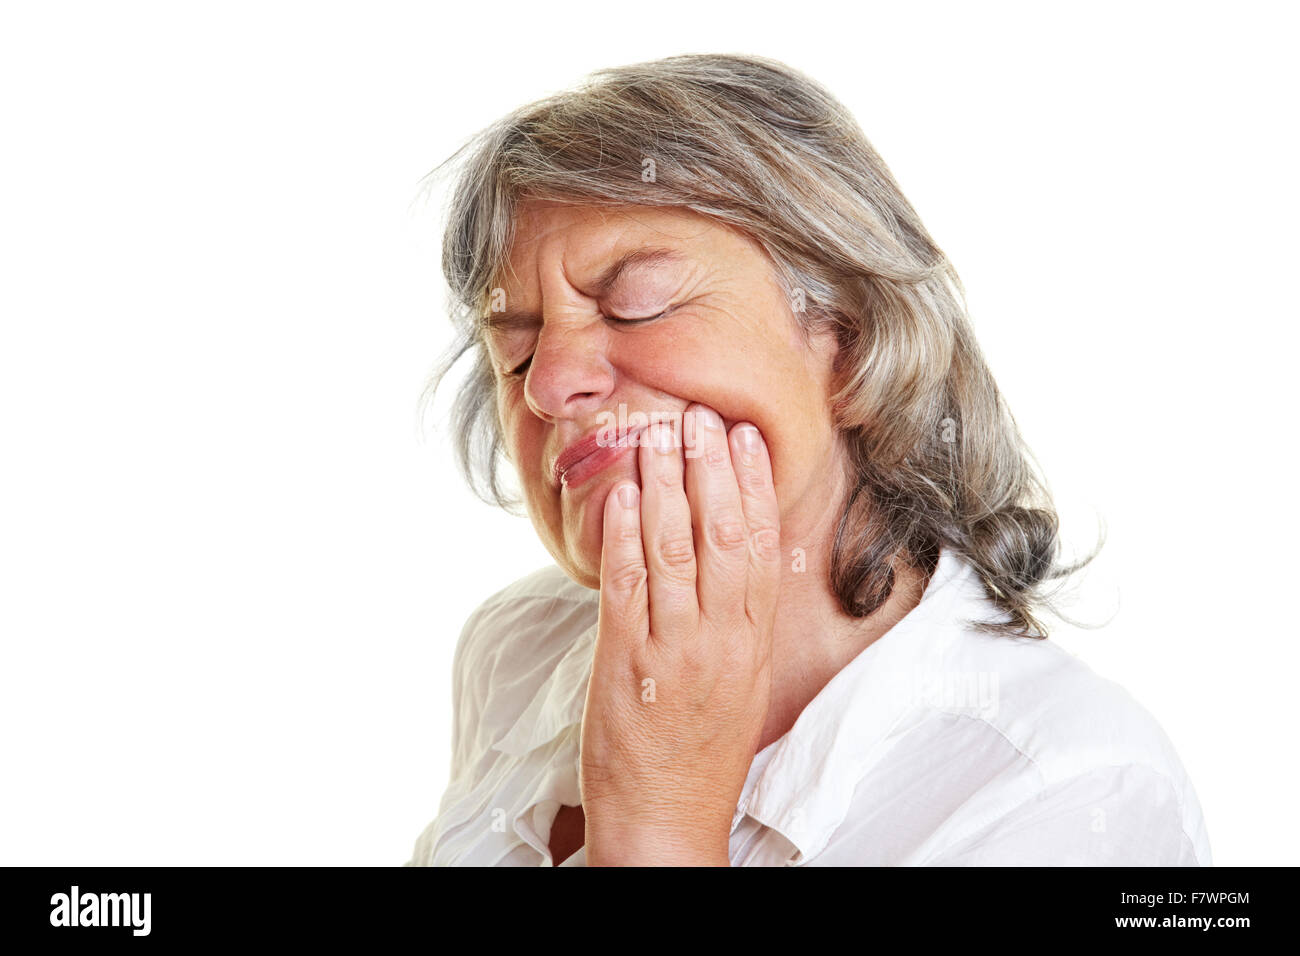 Elderly woman with toothache holding her cheek - Stock Image